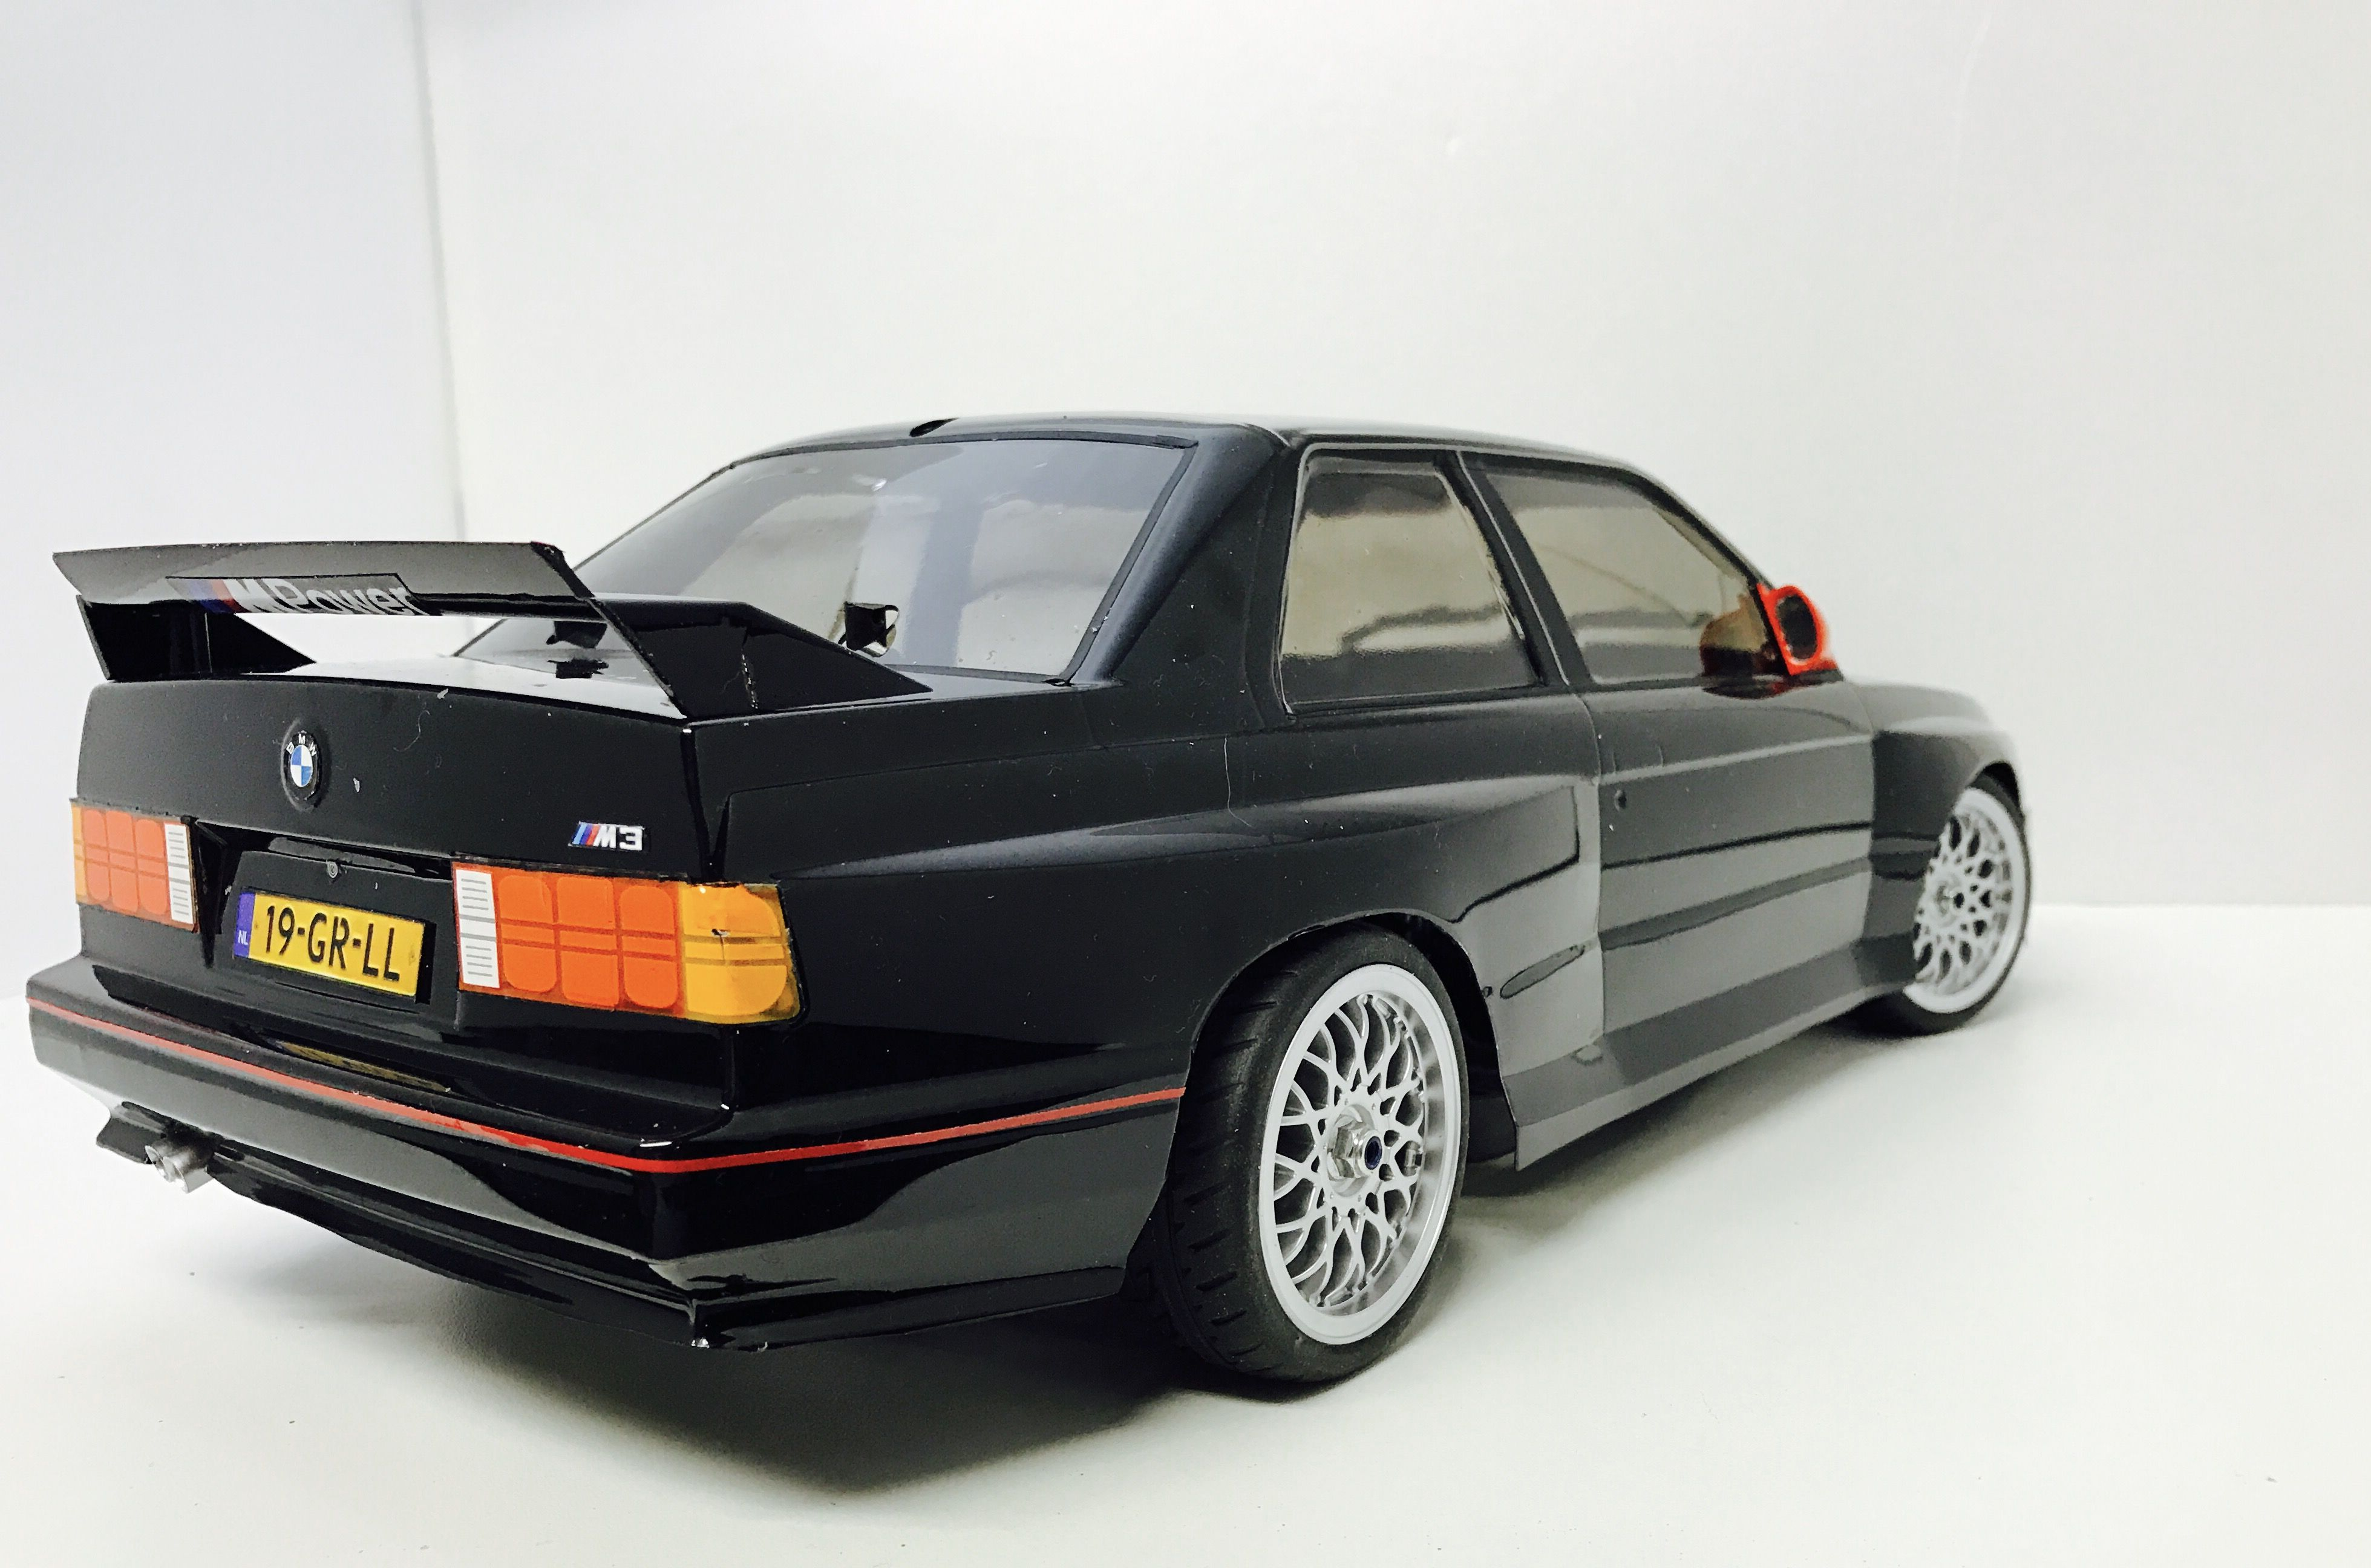 bmw m3 e30 from tamiya 1 10 tamiya bmw m3 cars rc cars. Black Bedroom Furniture Sets. Home Design Ideas